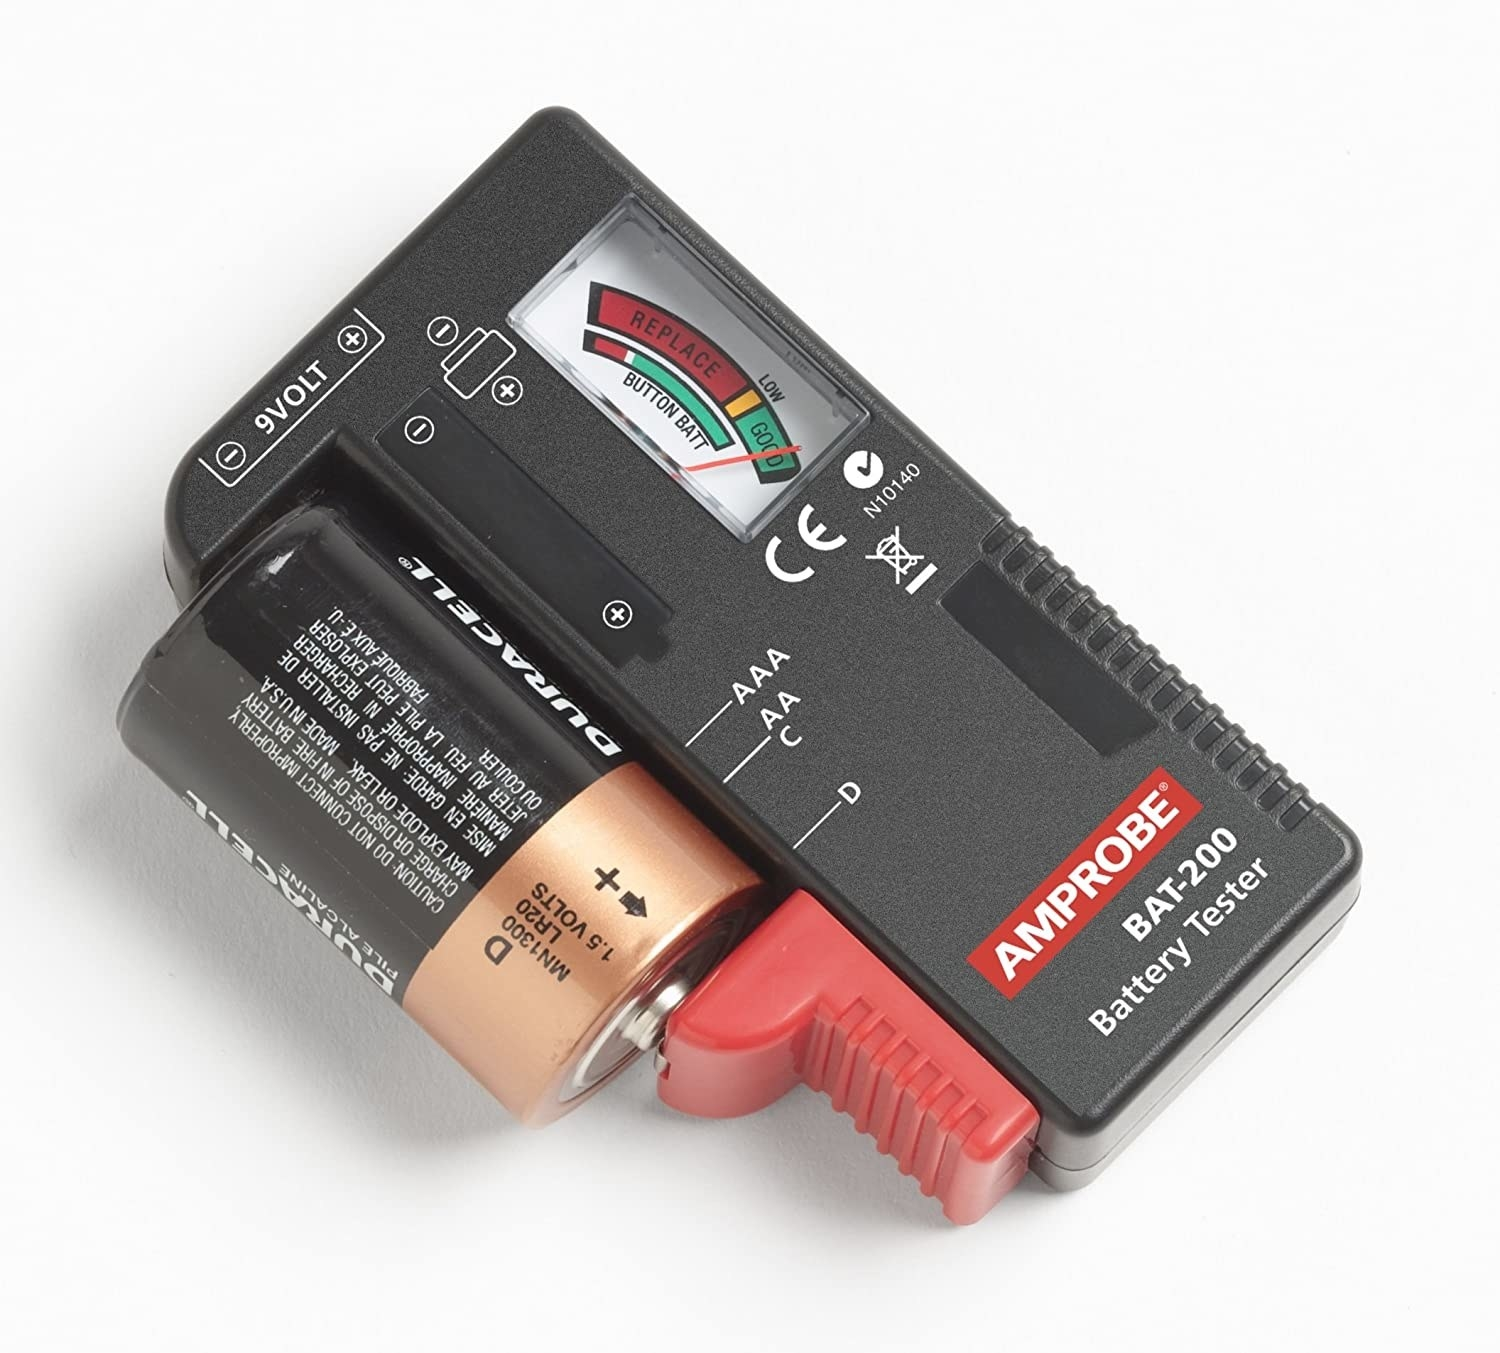 A small rectangular device with a D battery hooked up on the side